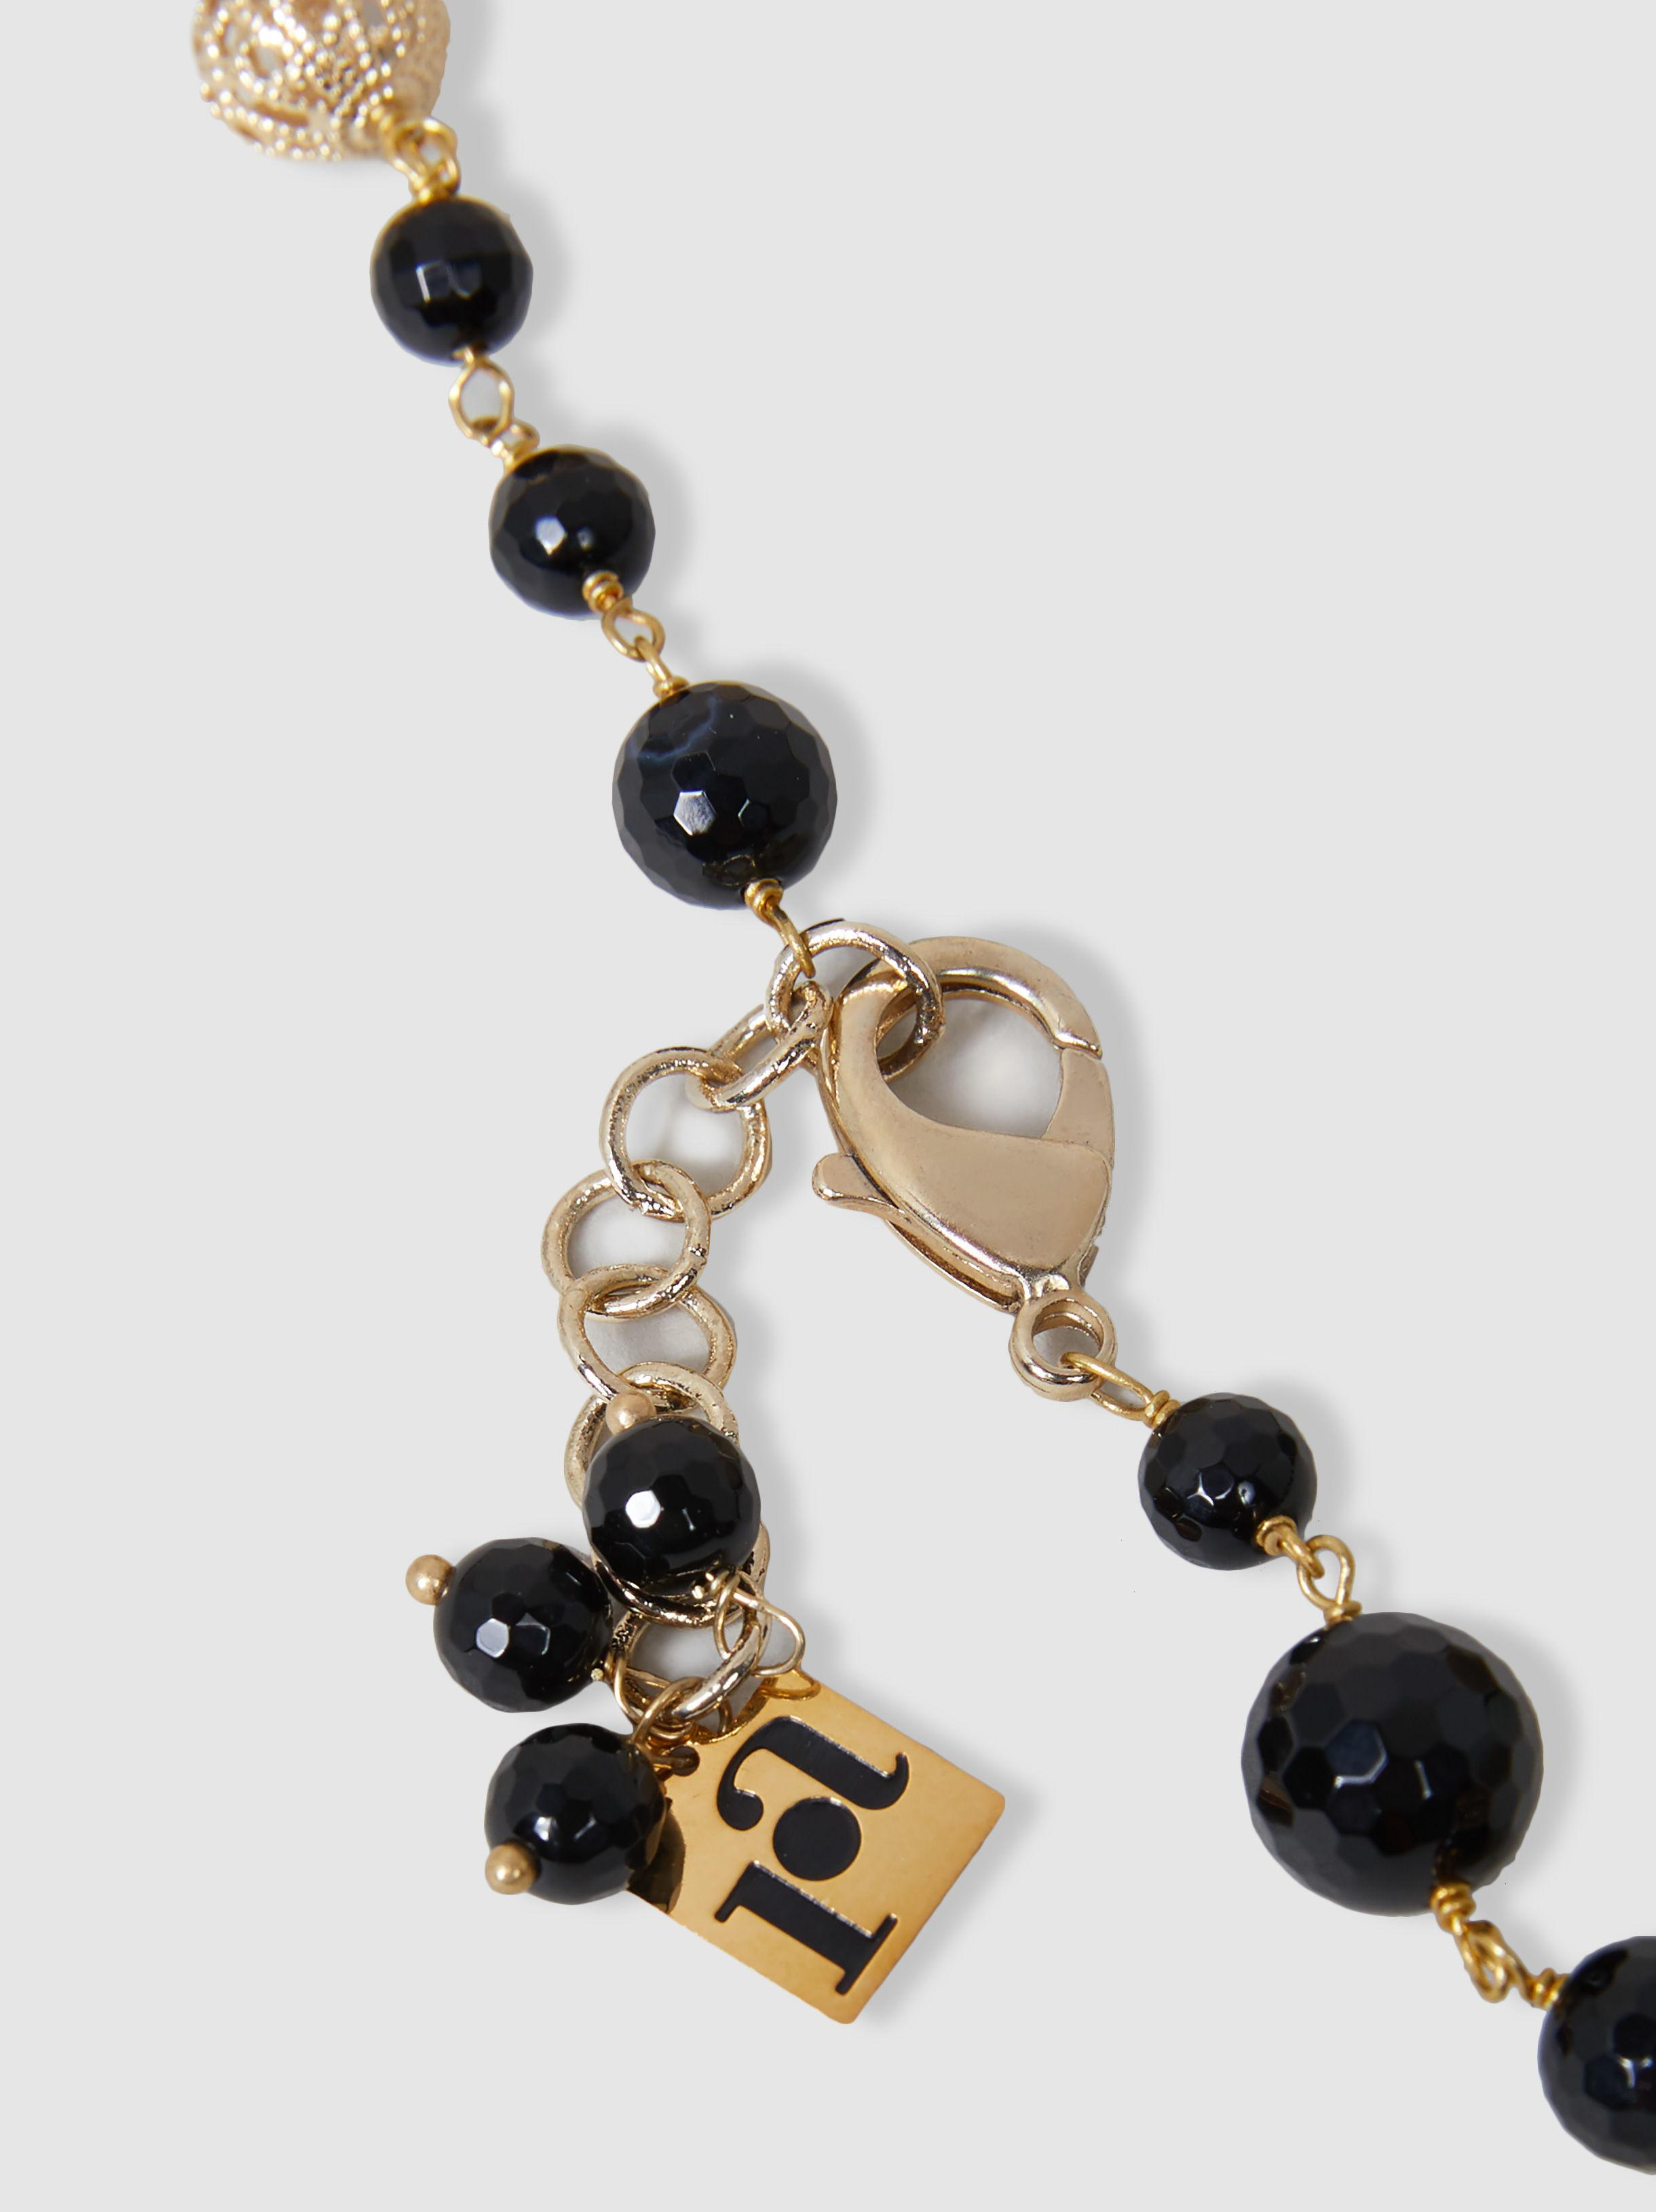 Mistico Beaded Onyx And Gold-Tone Necklace Rosantica 31B8puE5